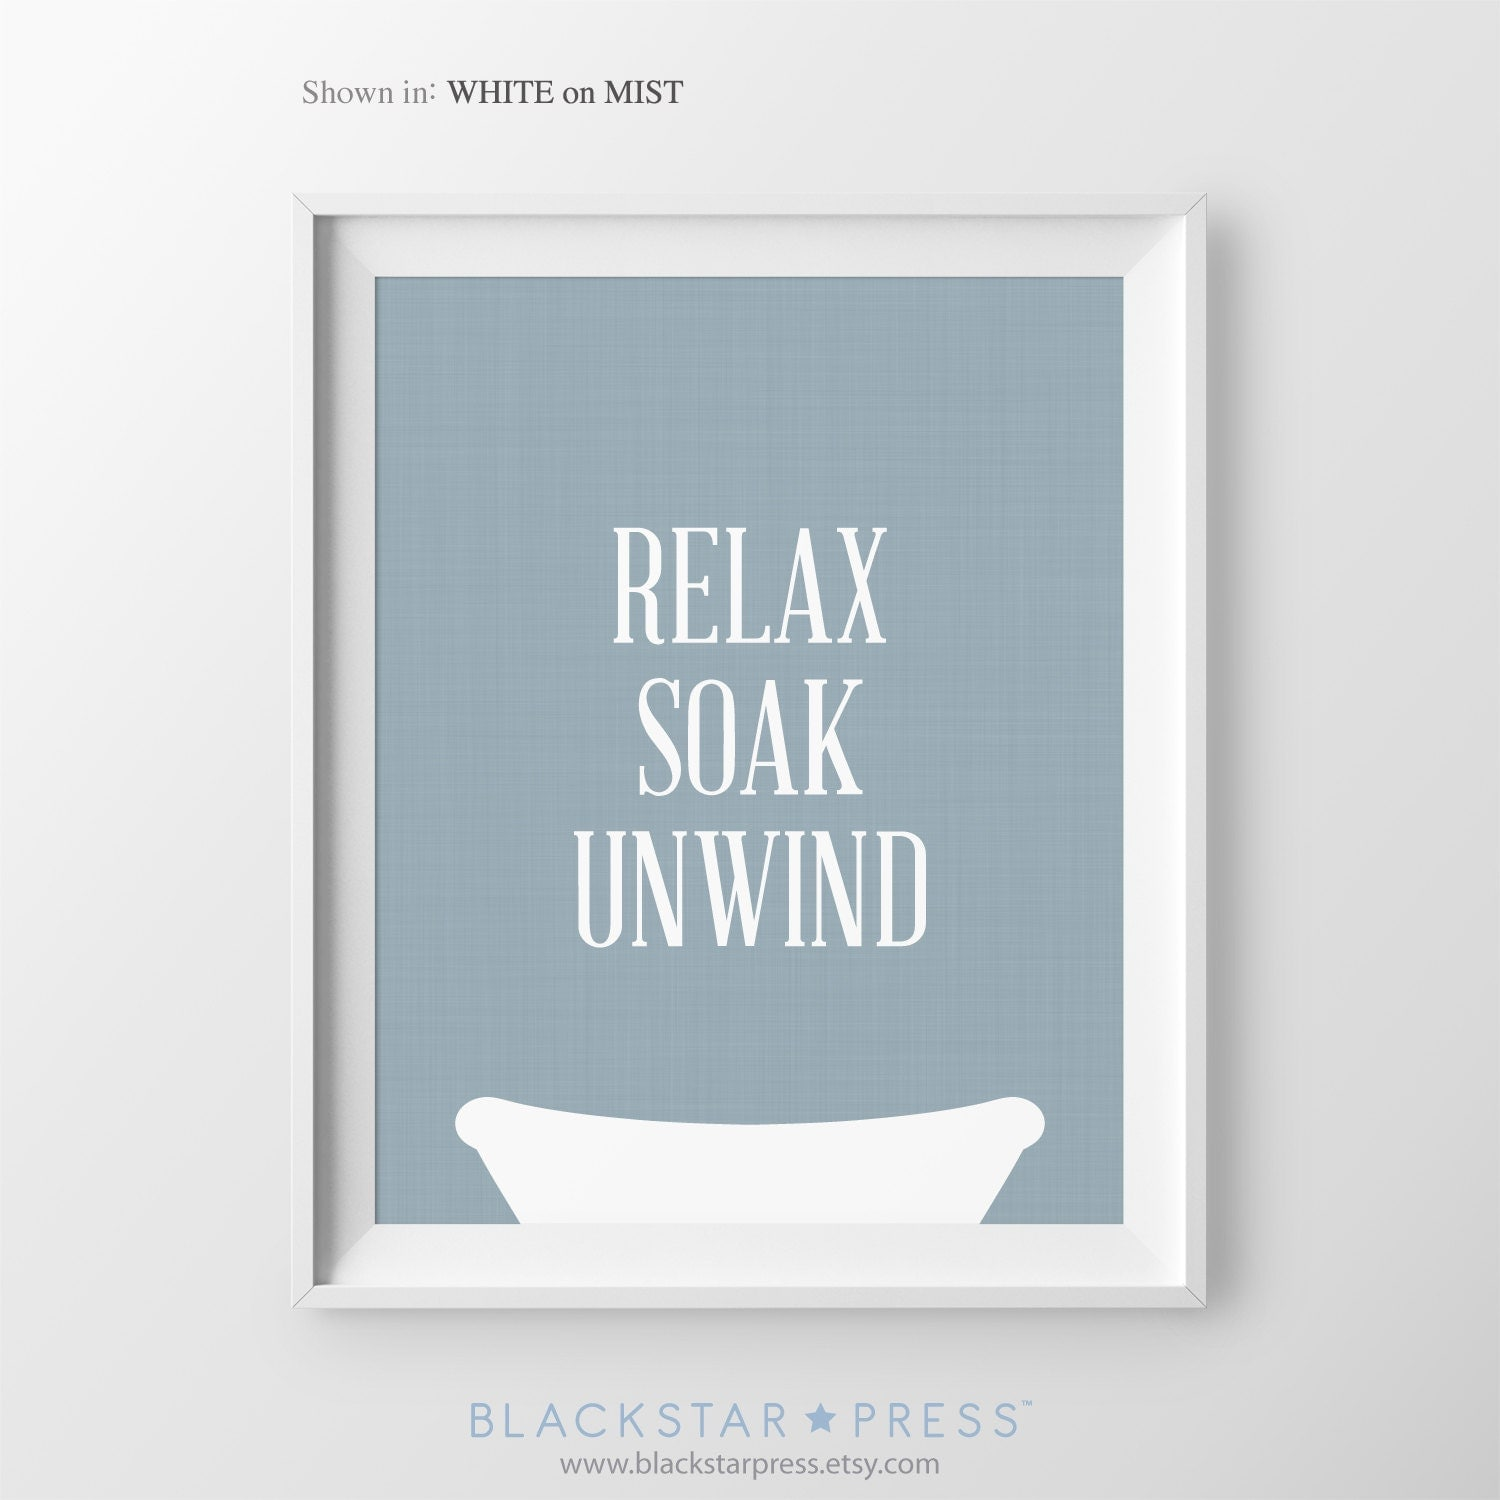 Bathroom wall decor quotes - Relax Soak Unwind Navy Blue Bathroom Decor Powder Room Art Bathroom Wall Art Bathroom Sign Relax Renew Refresh Navy Bathroom Wall Decor